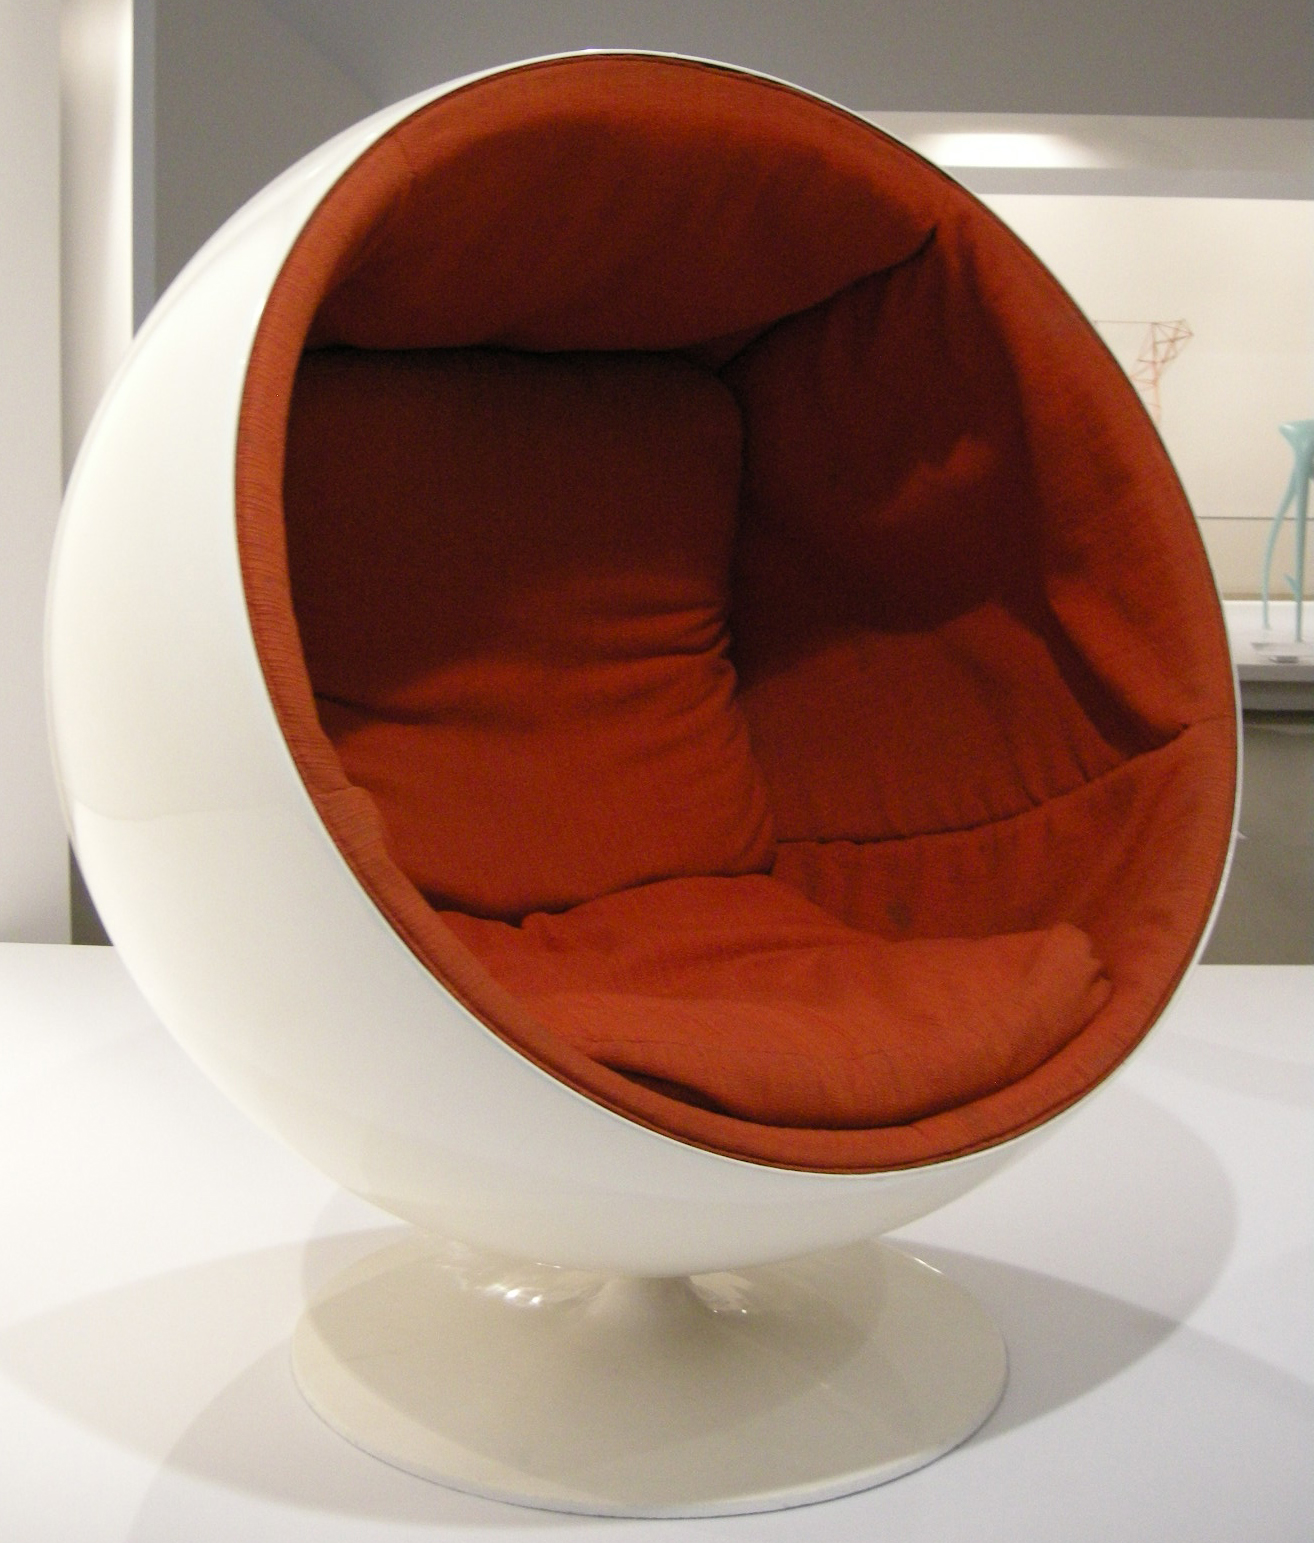 Designer Chairs Used Ball Chair Wikipedia